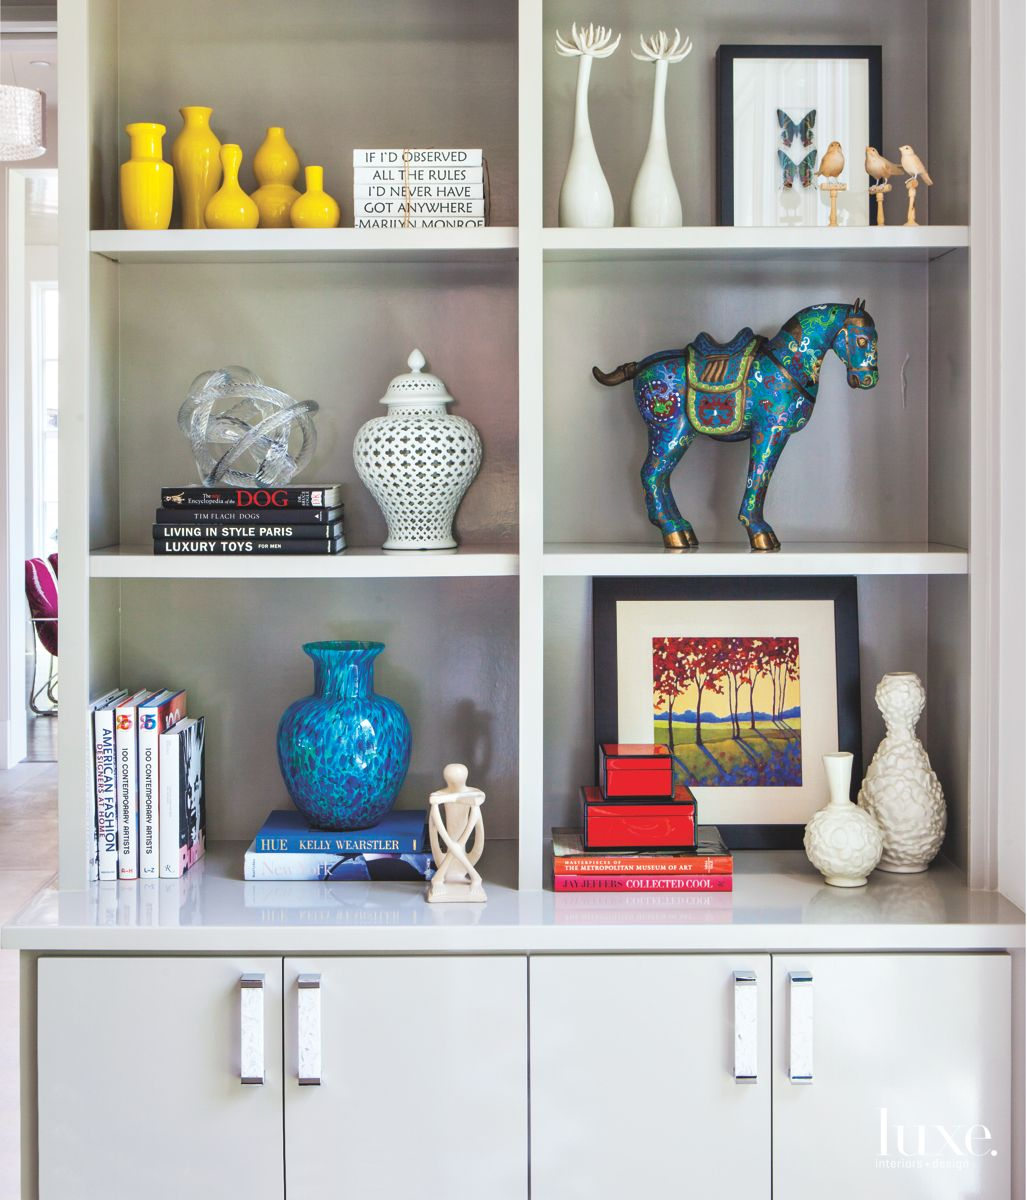 Cabinets with Eclectic Art, Horse, Vase, and Other Pieces